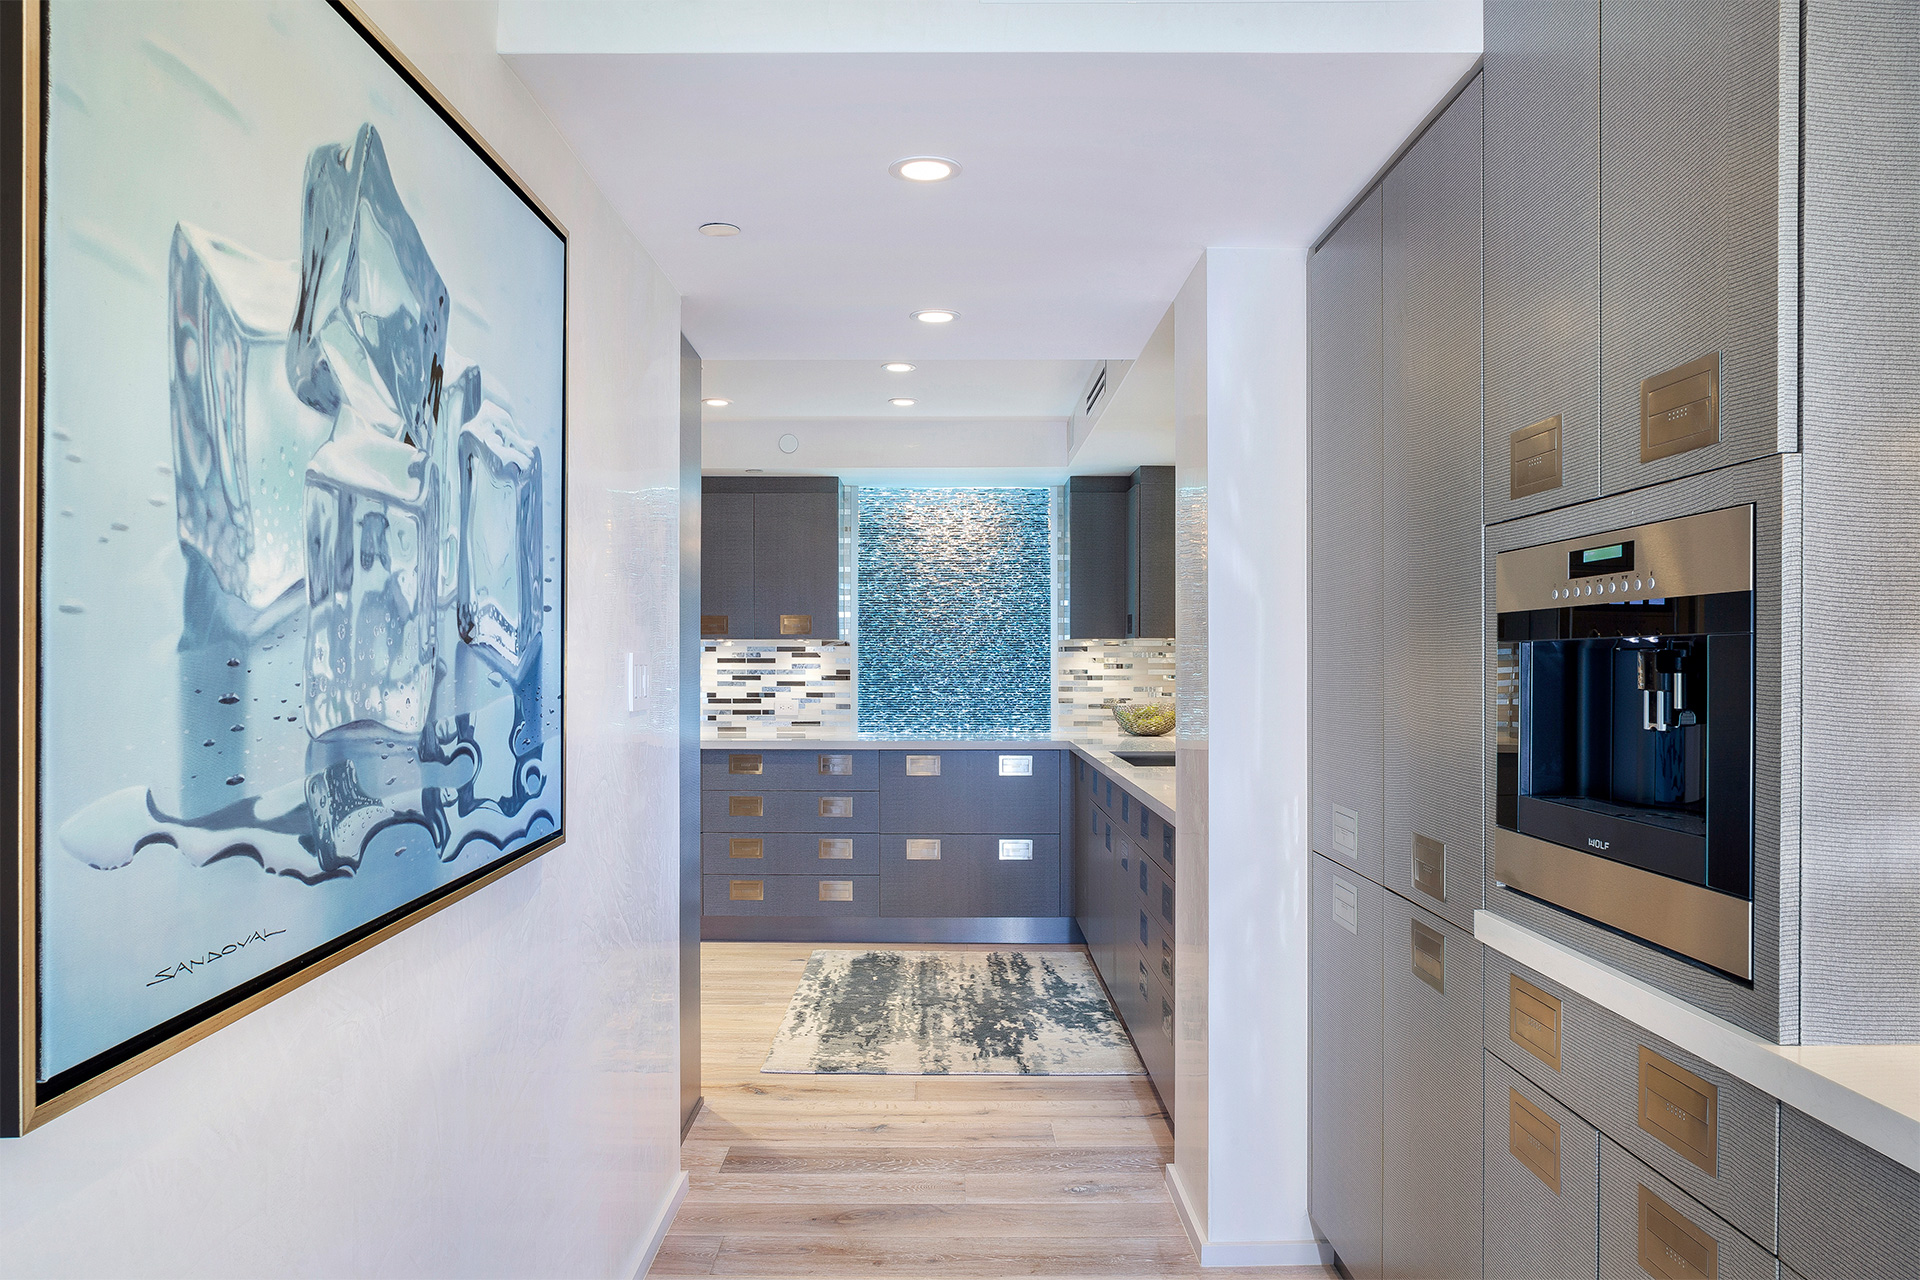 South Ocean Boulevard | West Palm Beach - The Place For Kitchens and ...